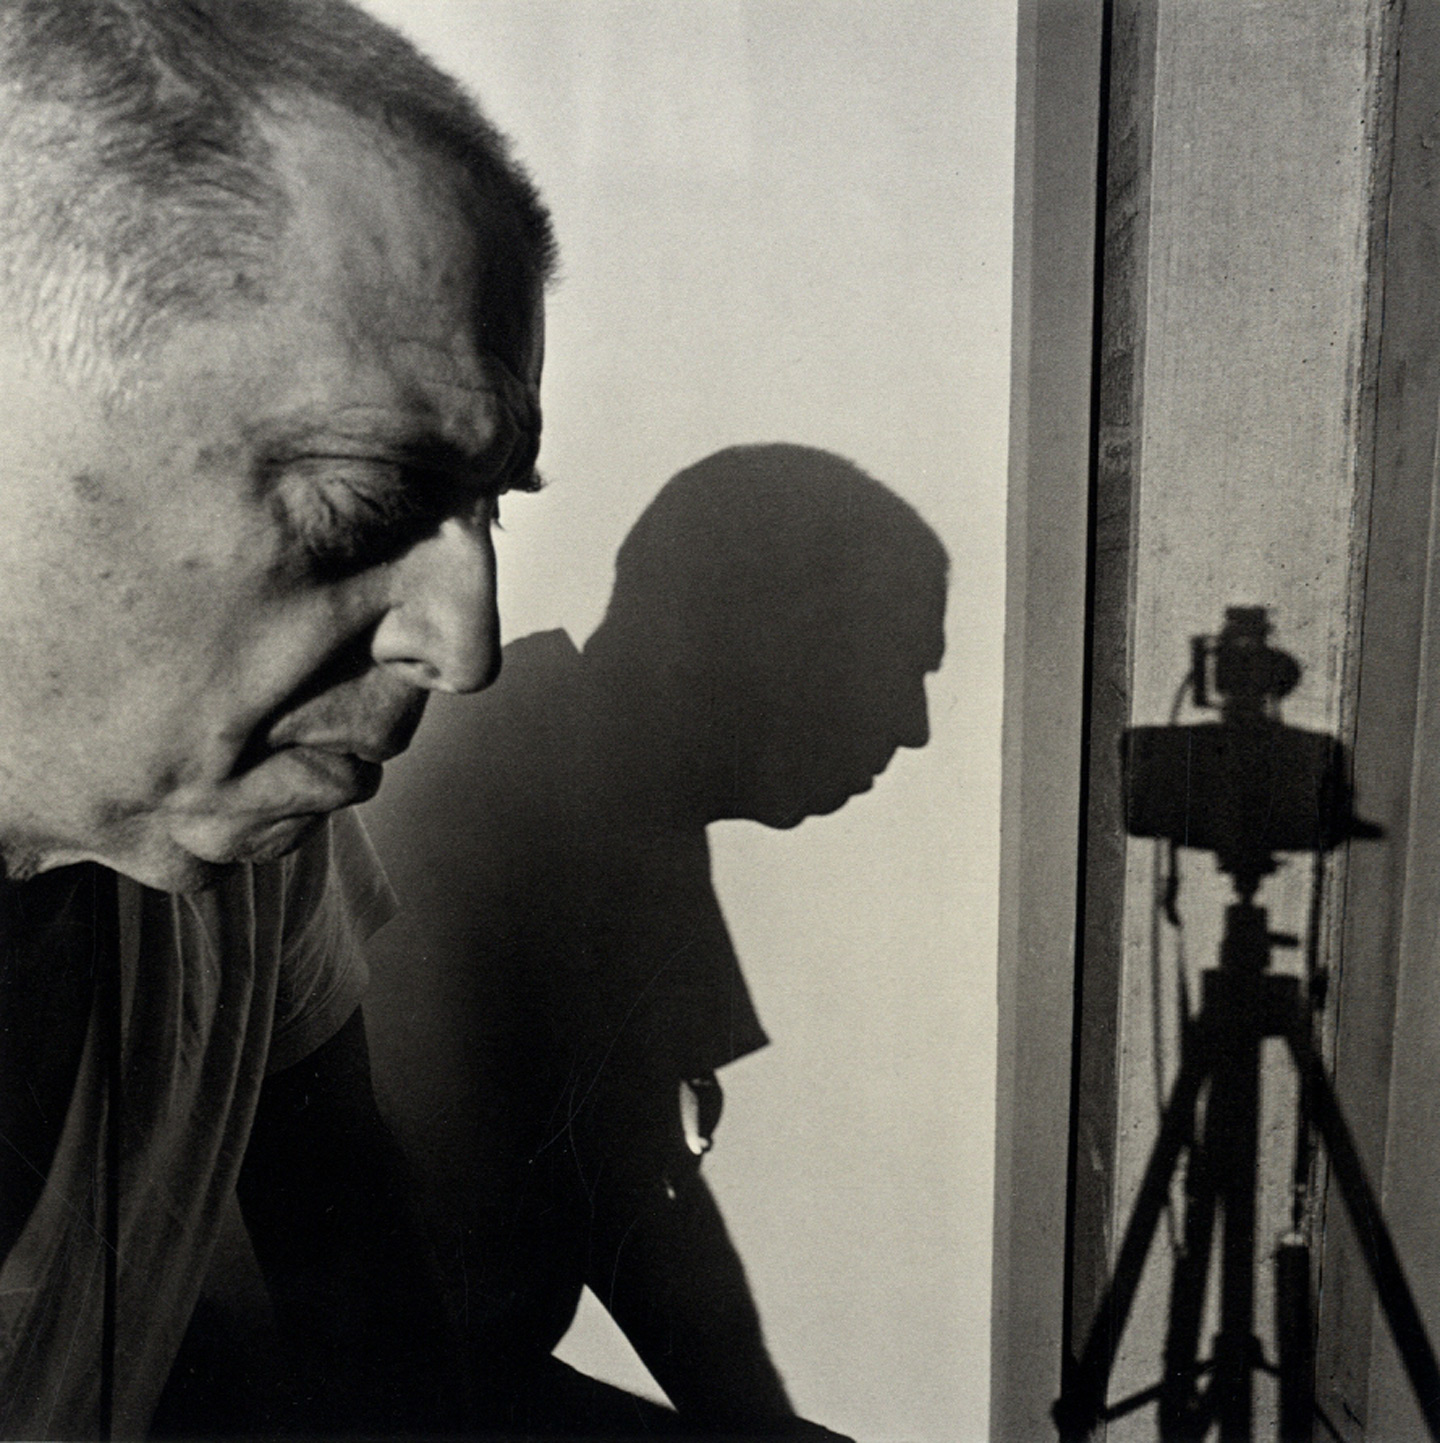 Lee Friedlander: Self-Composed (Janet Borden Gallery)